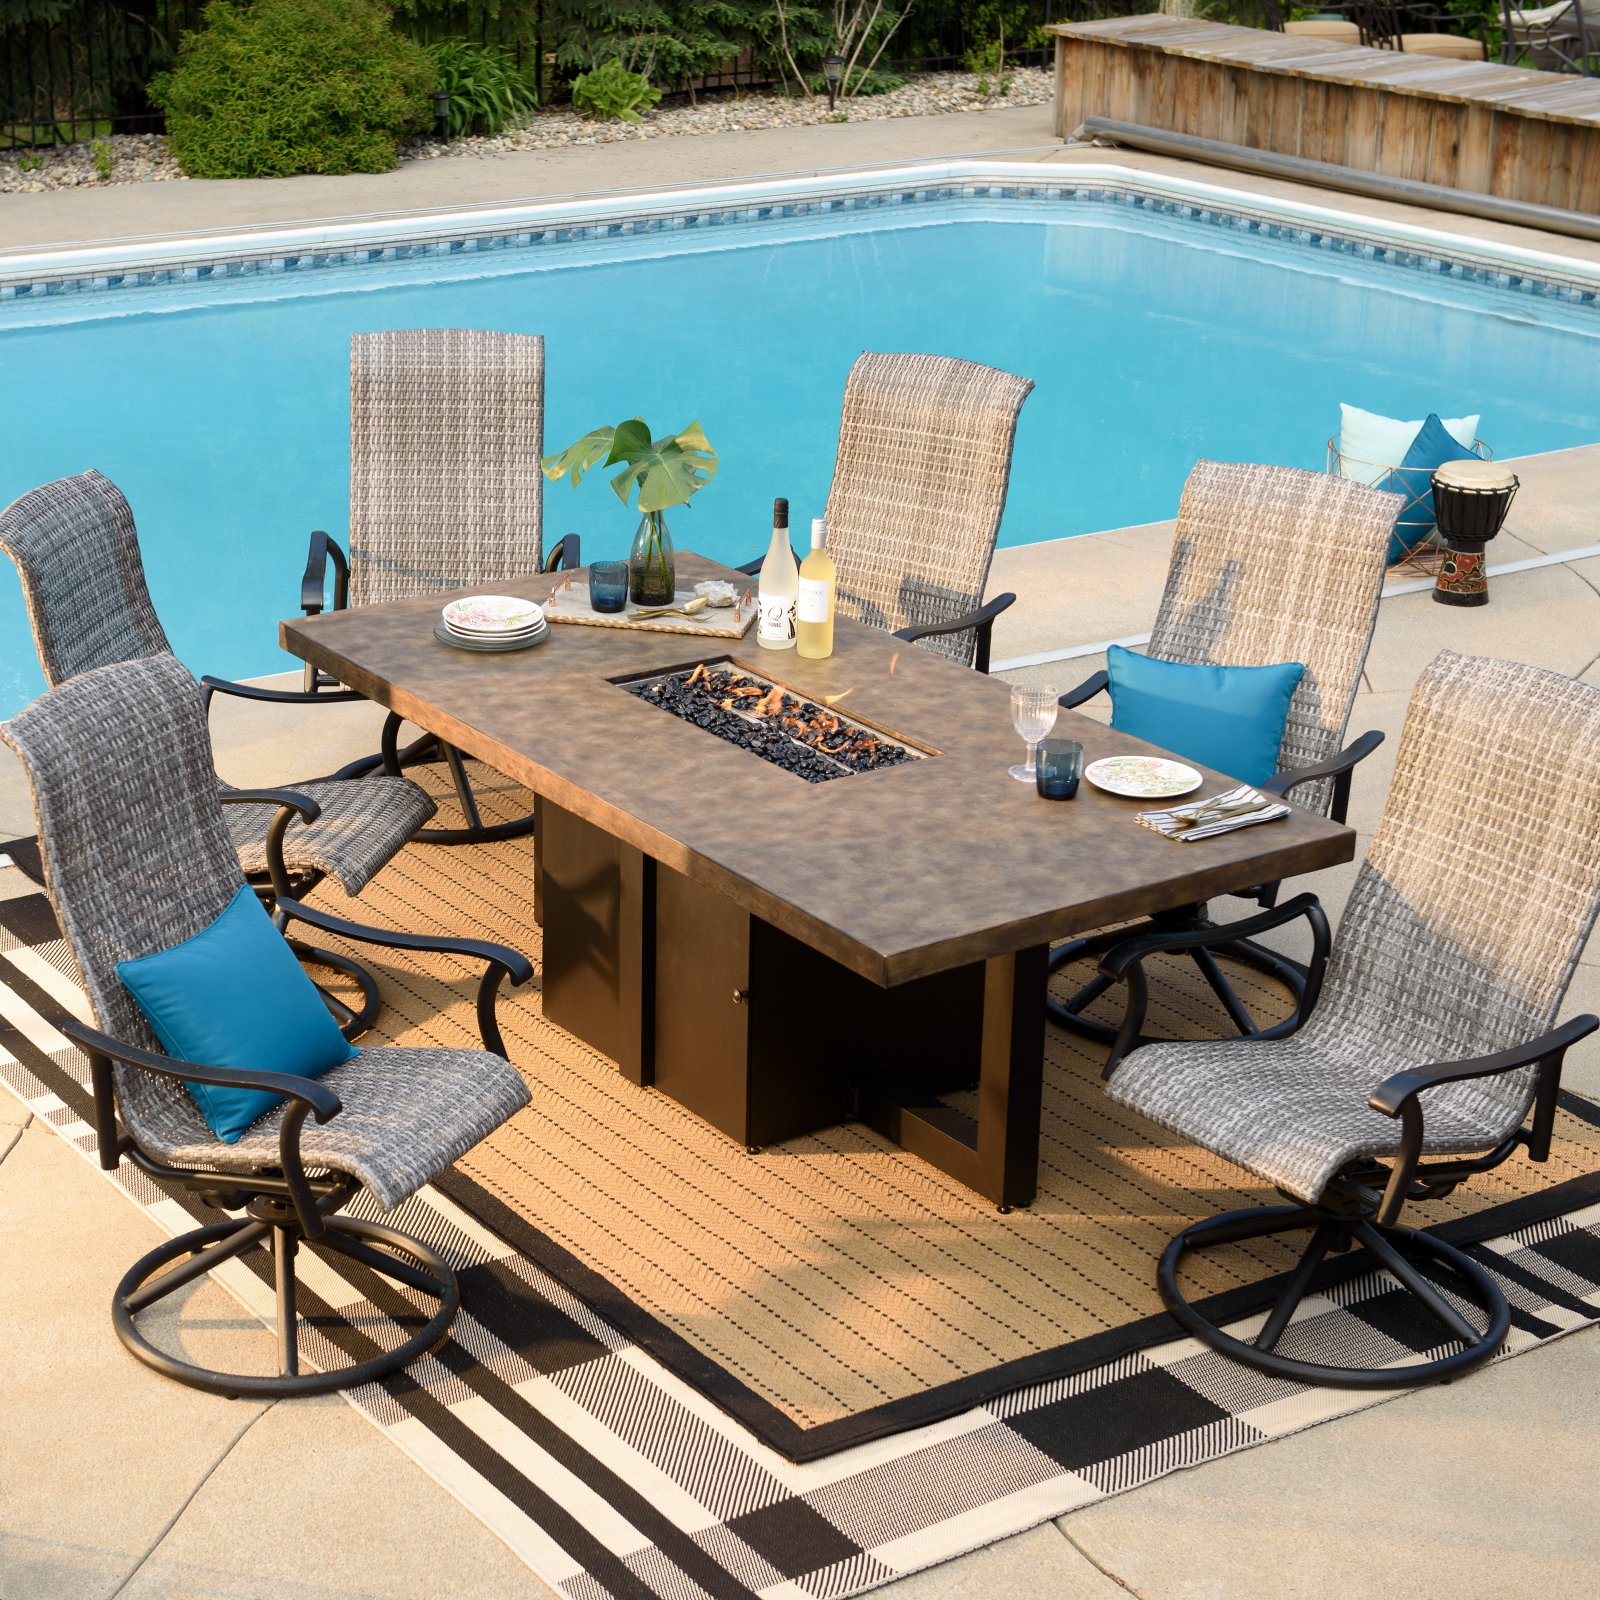 Outdoor Living Pool And Patio Denton